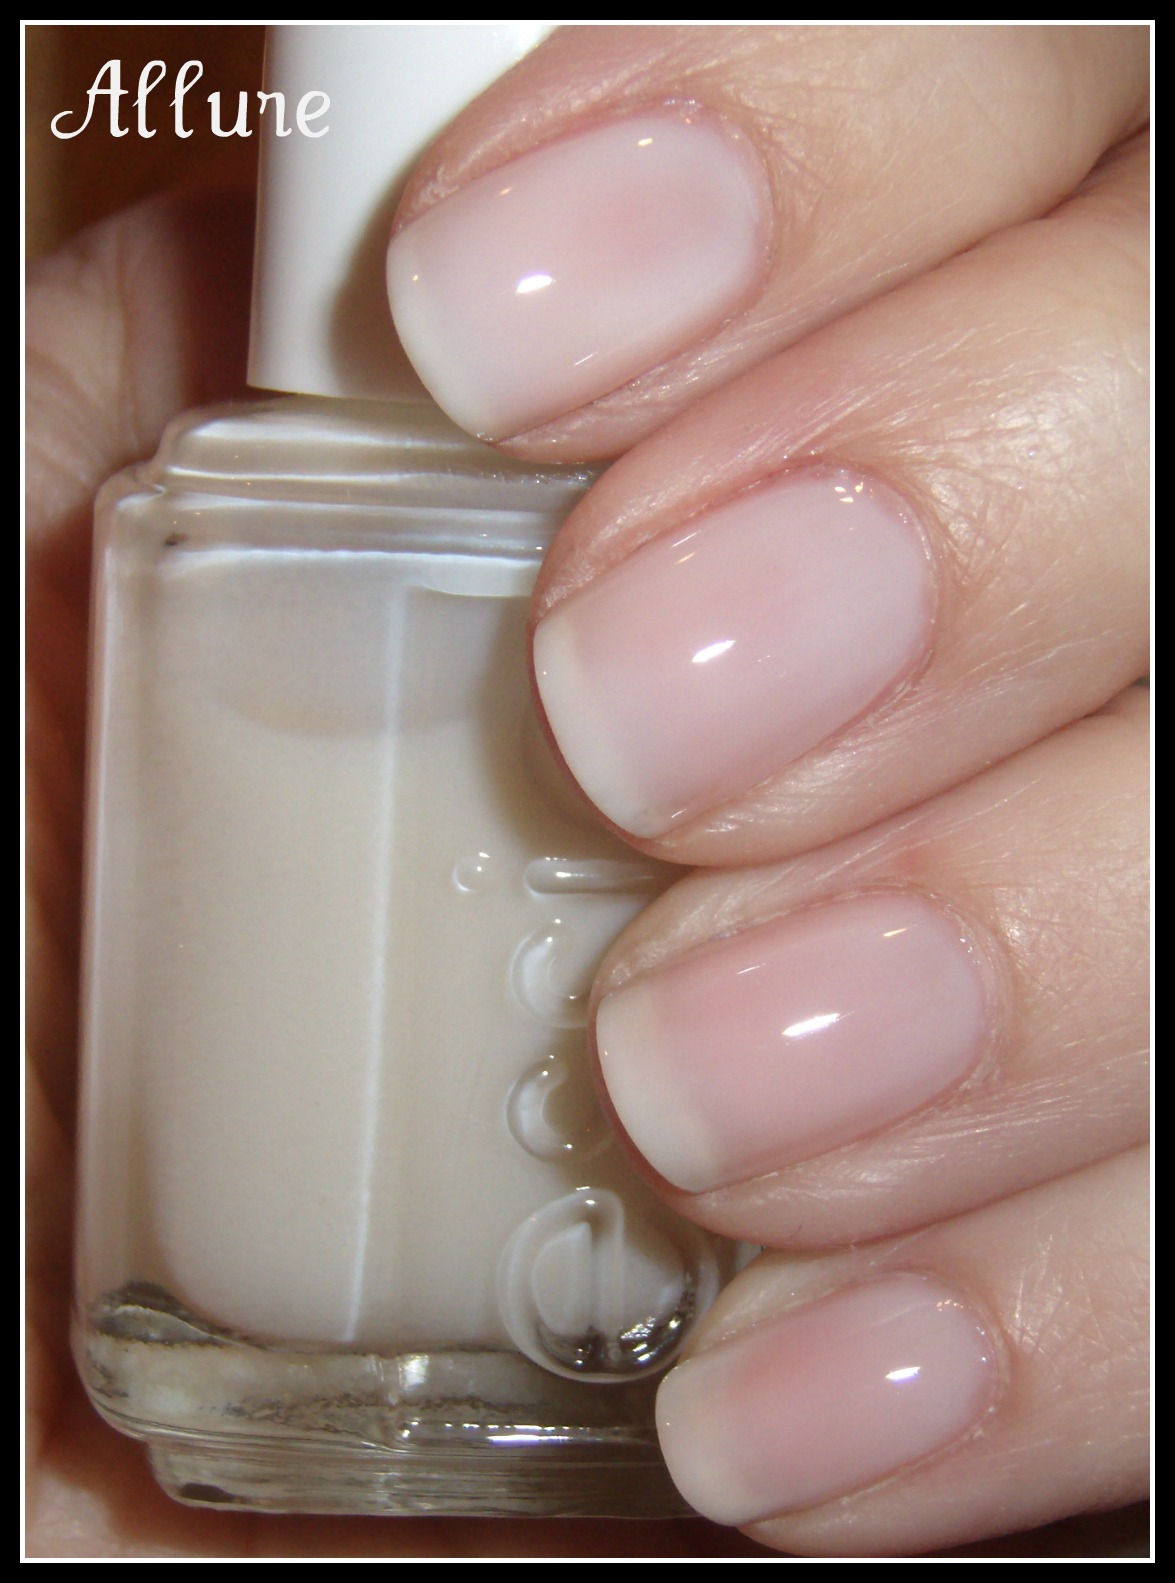 Of Cambridge Formerly Kate Middleton Wore This Shade On Their Wedding Day Edited To Add Her Manicurist Mixed With Another Blush Colored Polish